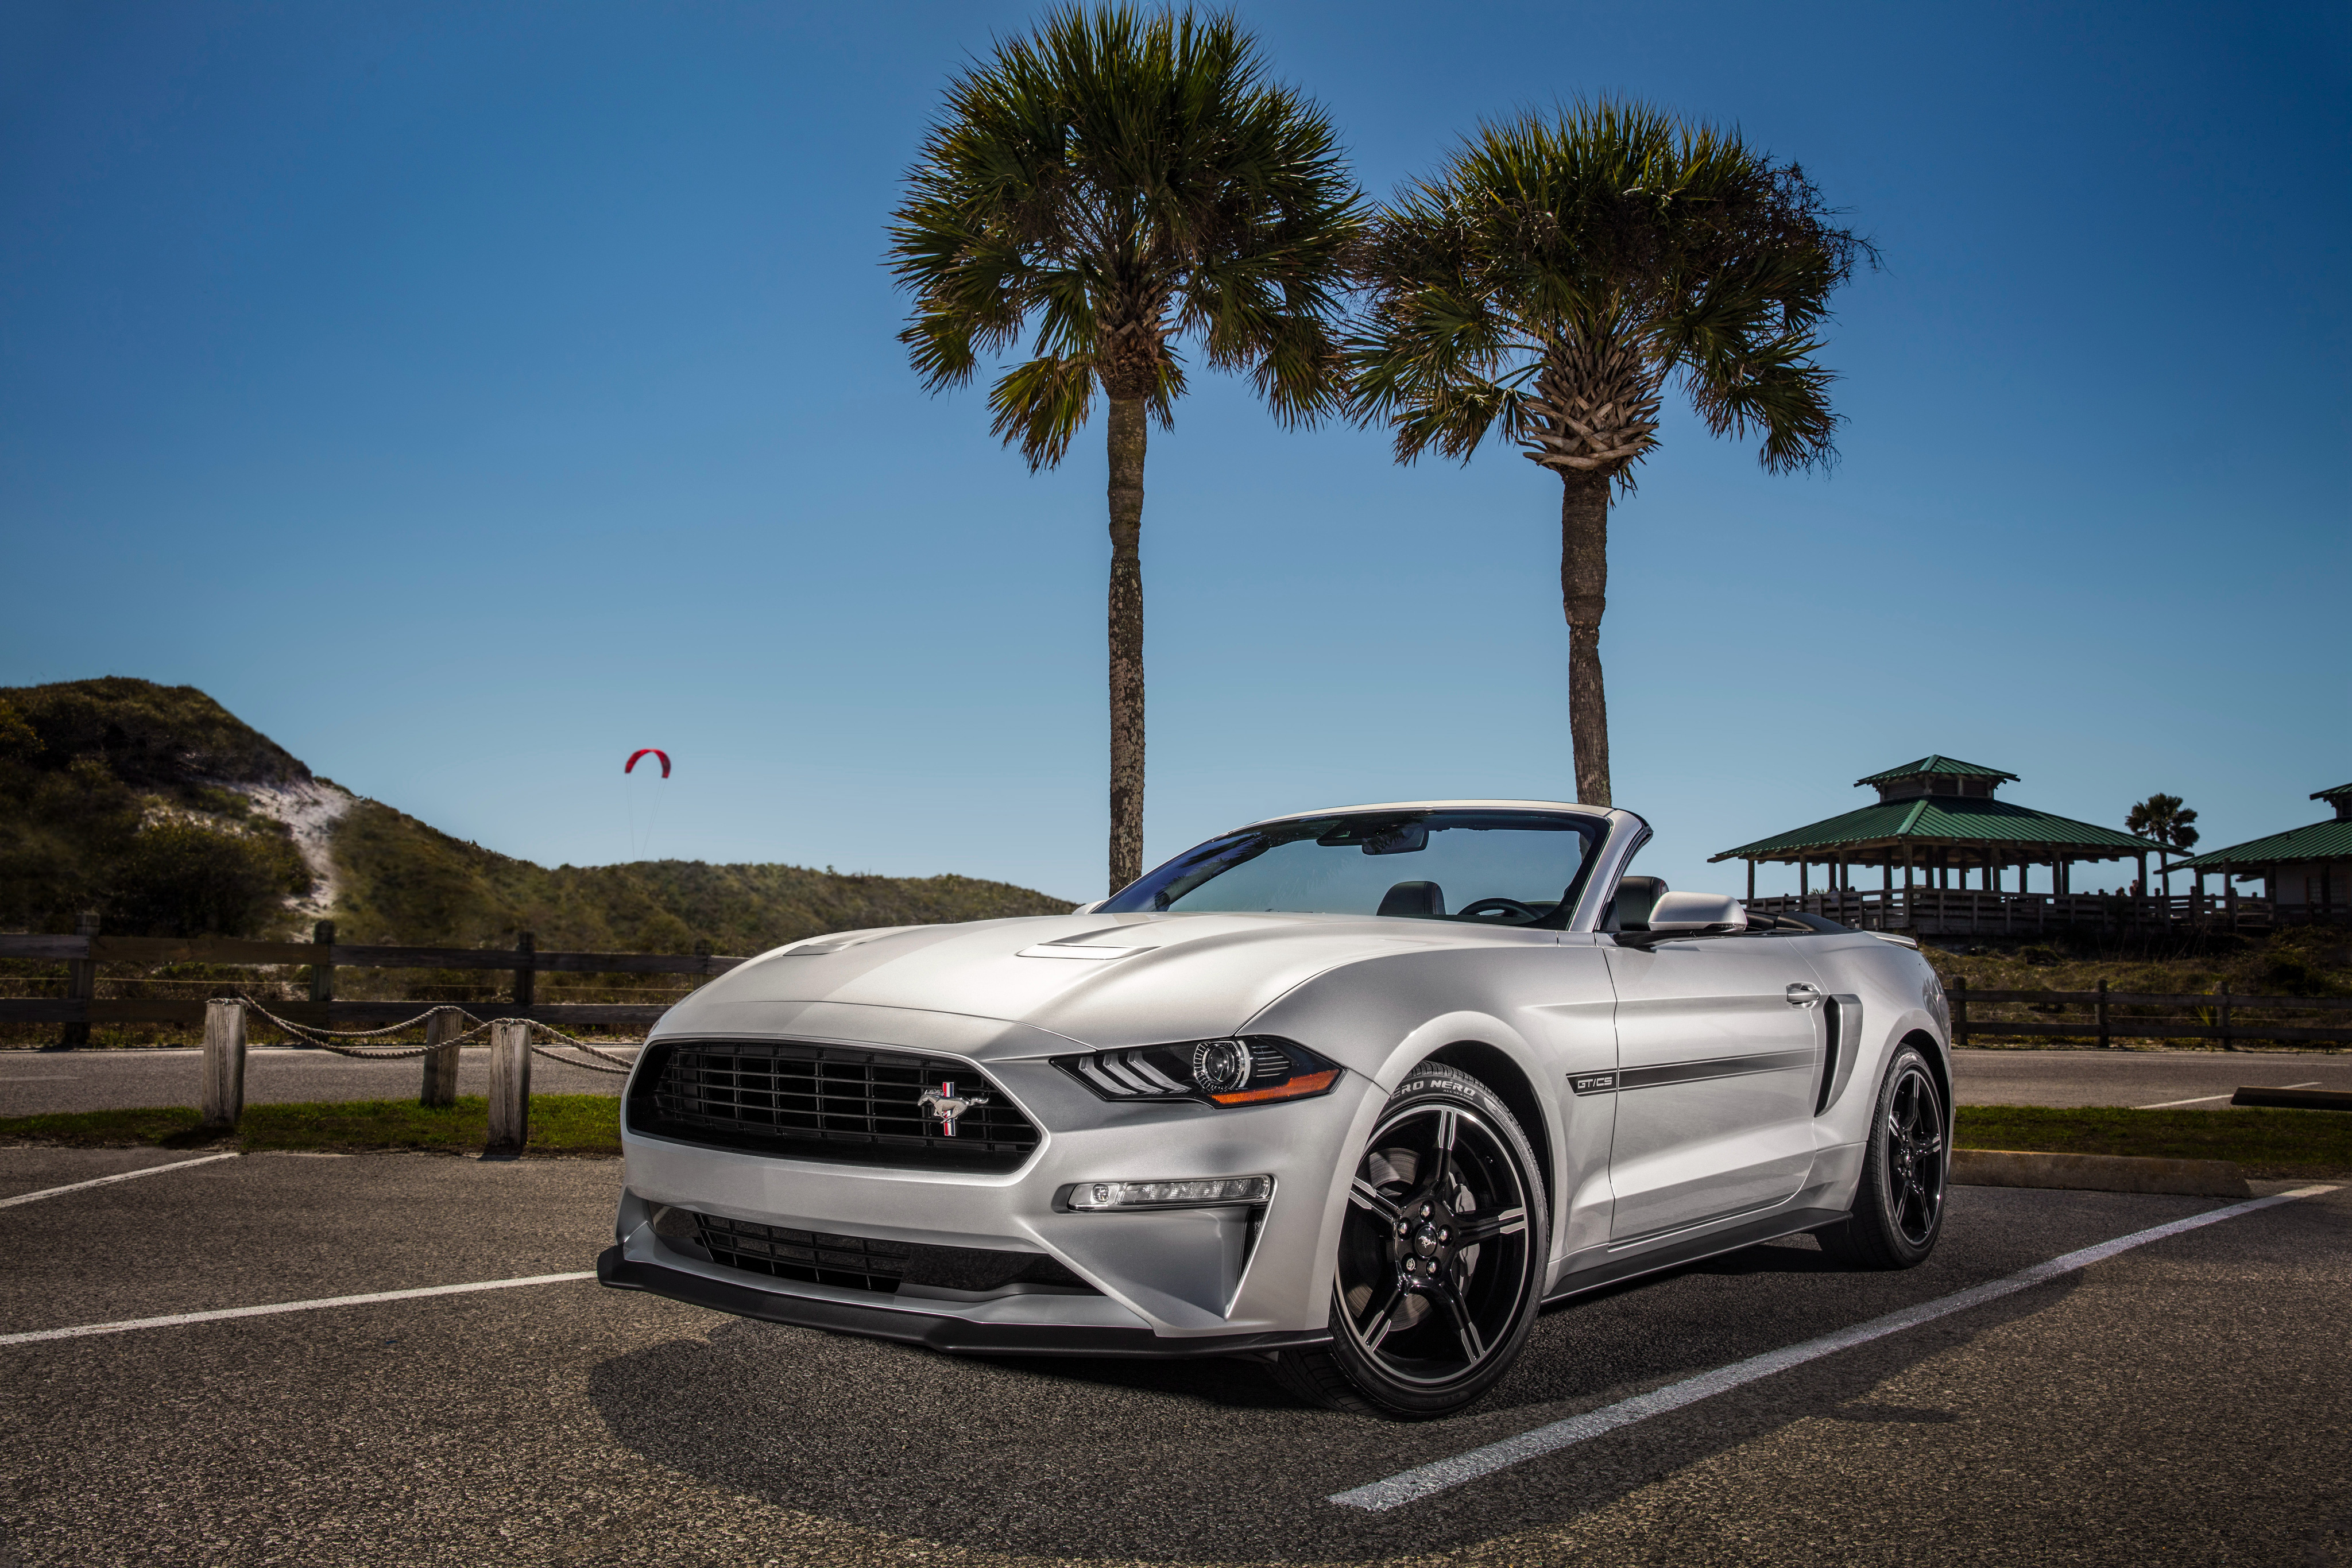 2019 Ford Mustang Gt Convertible Hd Cars 4k Wallpapers Images